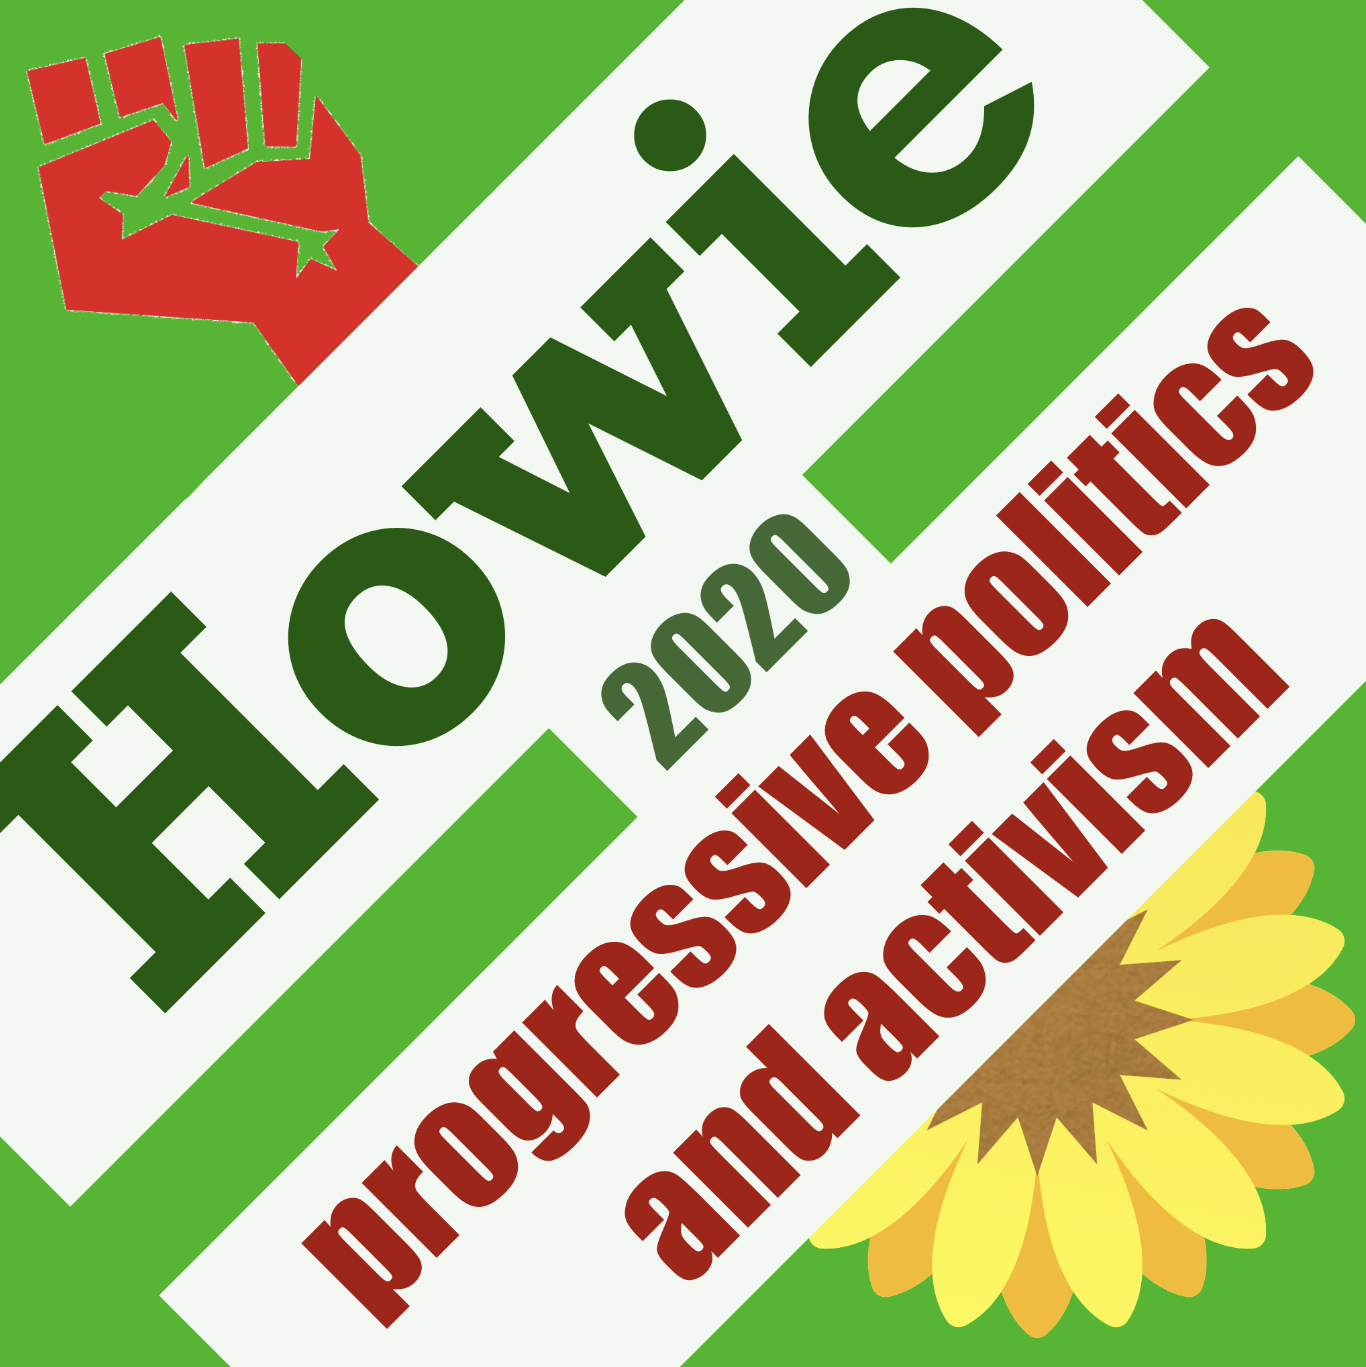 Howie-2020   172 - You Can't Decolonize the Ballot Box